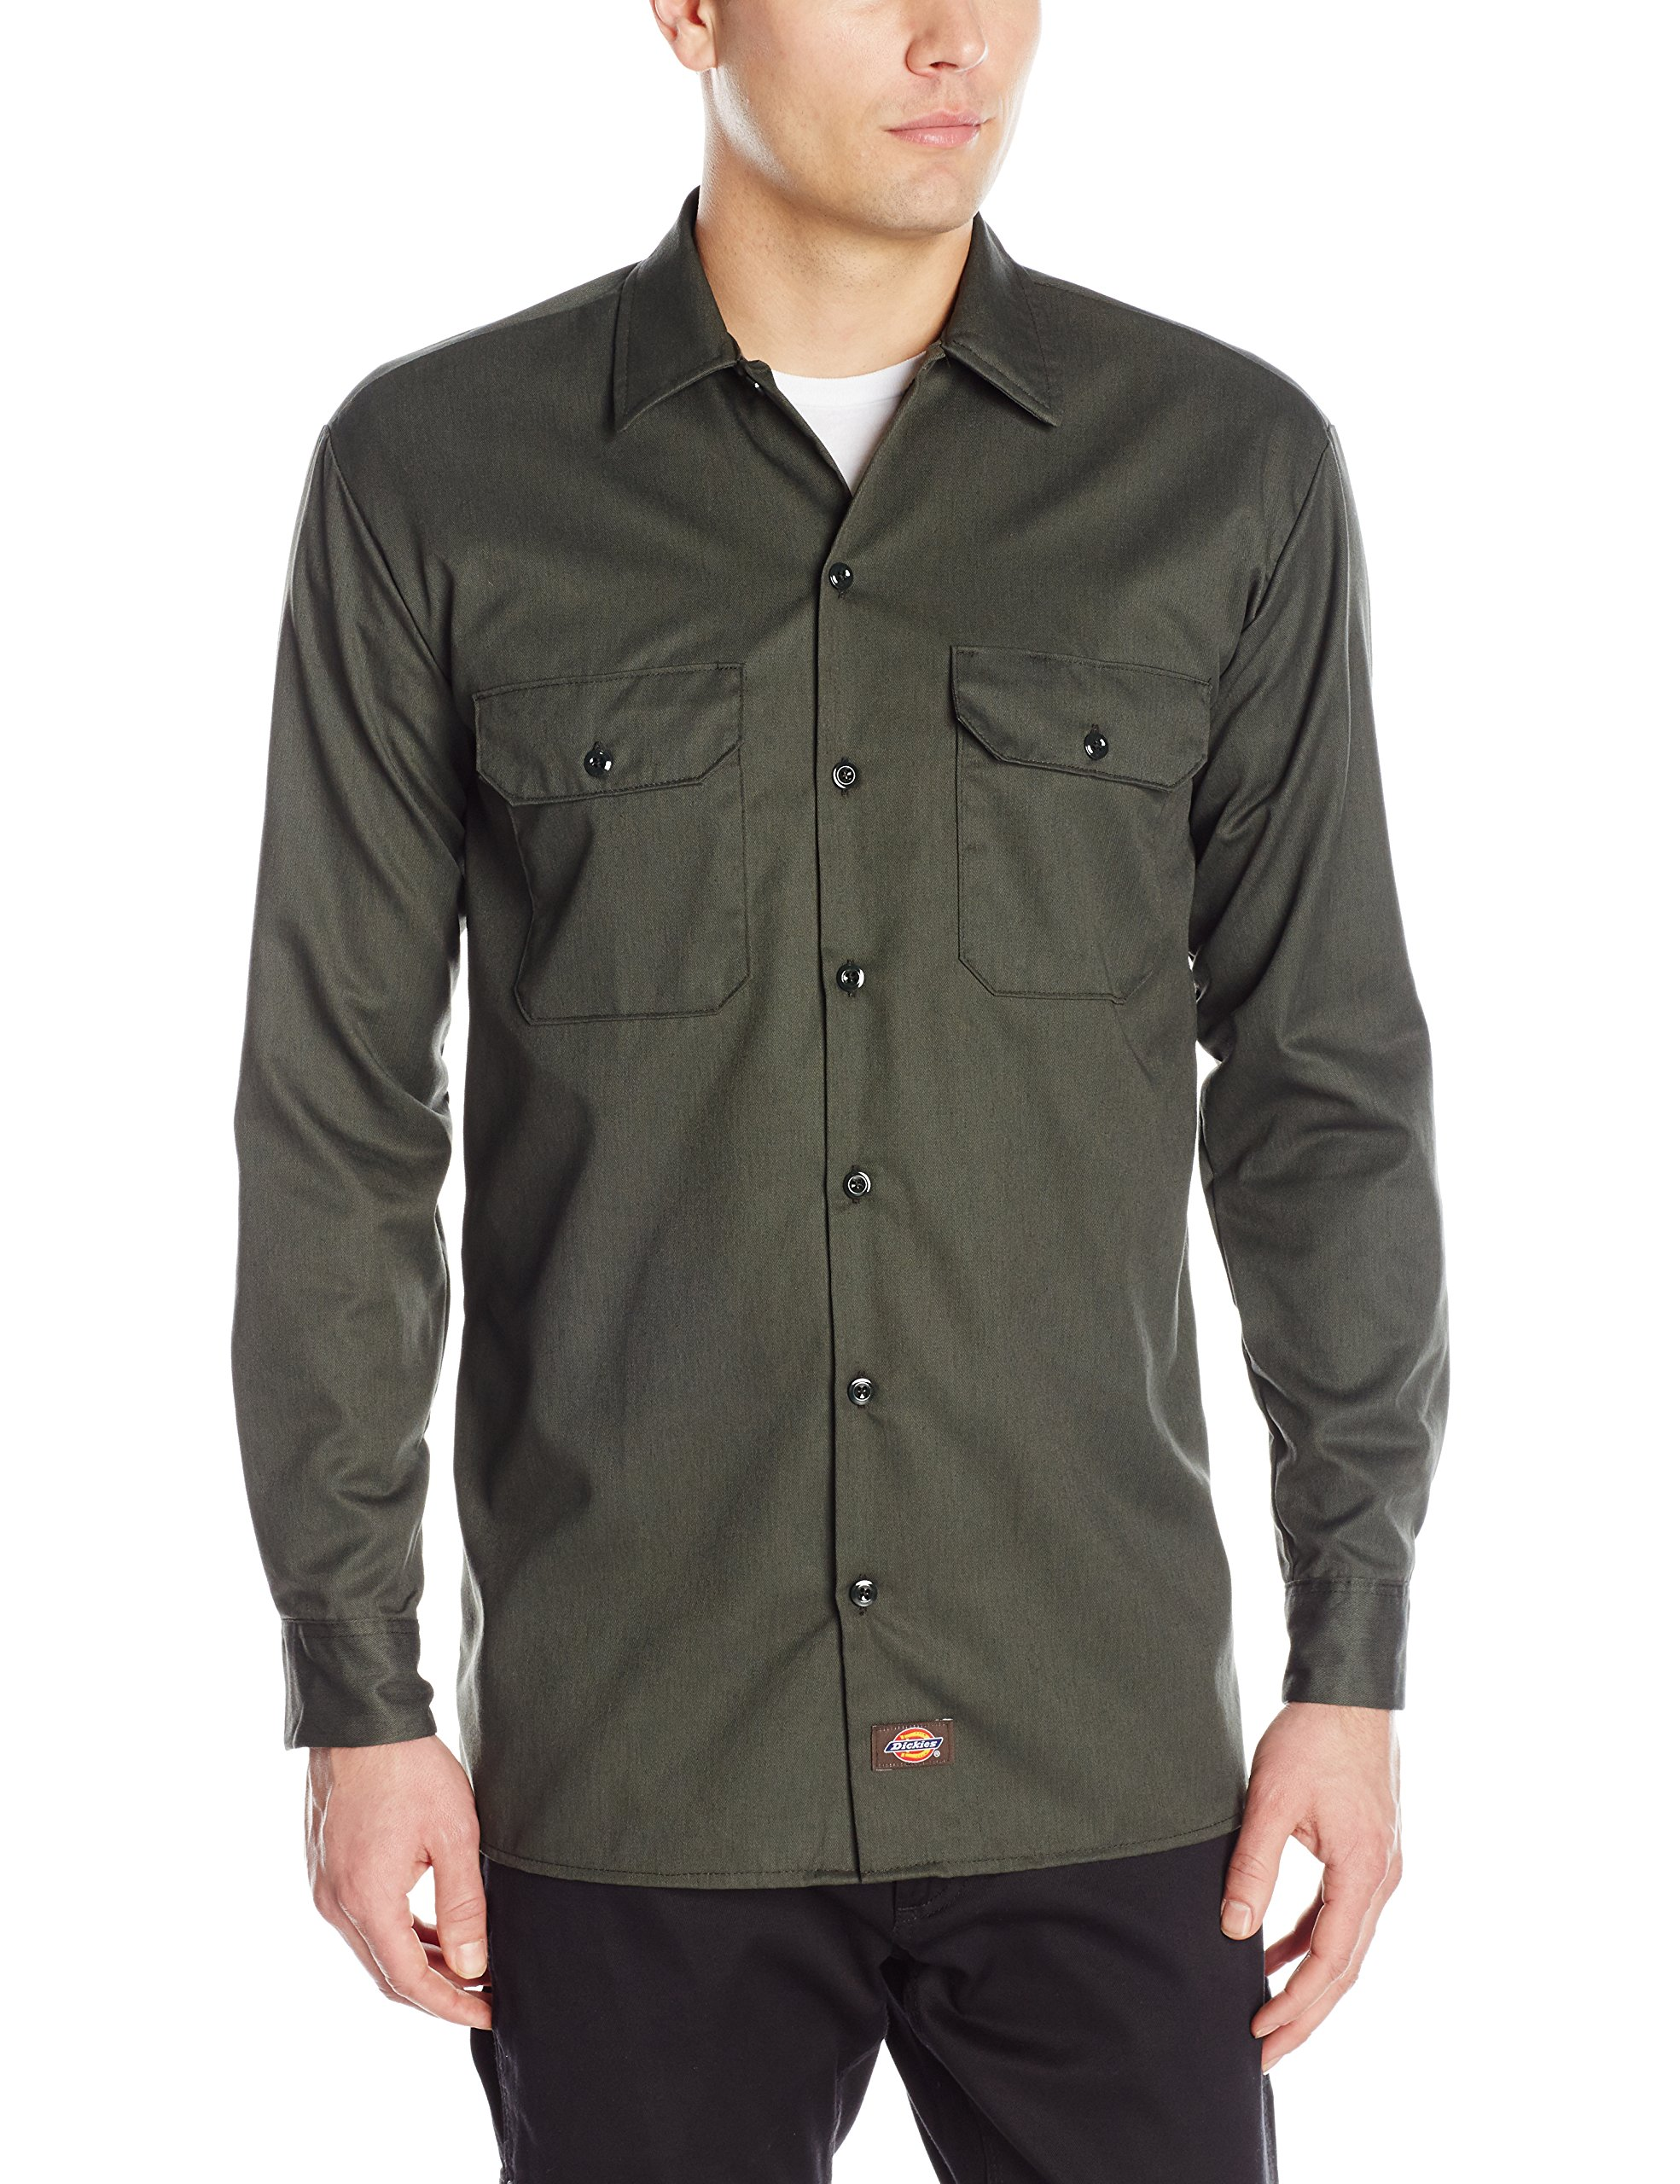 Dickies Men's Long Sleeve Work Shirt, Olive Green, 2X